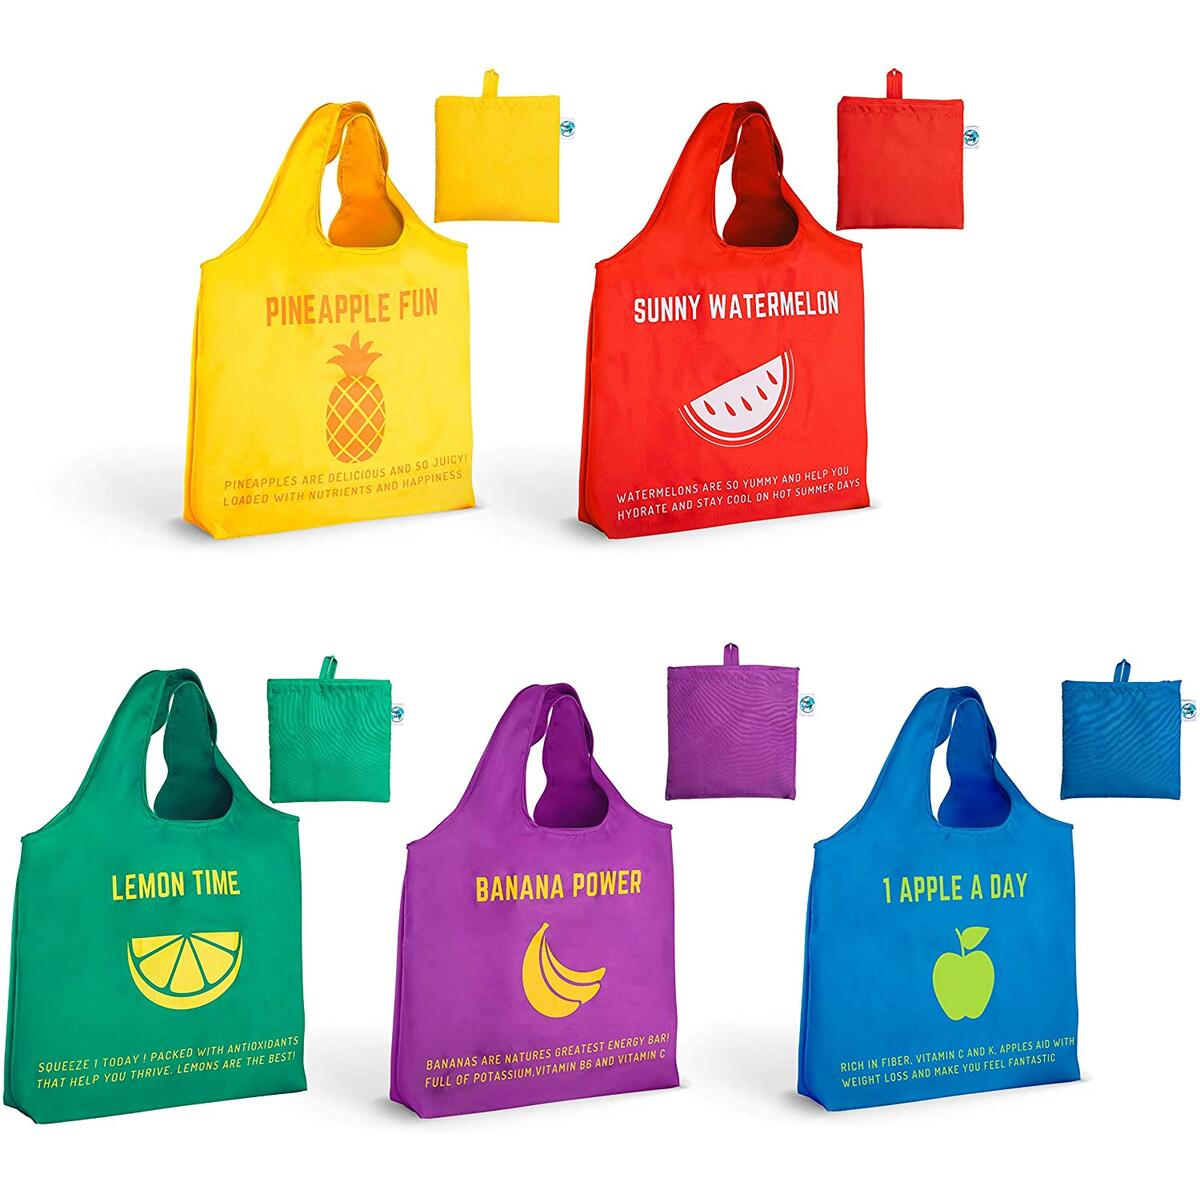 Reusable Grocery Bags for Shopping. Made from Recycled Plastic. Waterproof, Washable, Heavy Duty, Extra Large, 65LBS. Pack of 5 Foldable Into Pouch. With Cute, Fun, Colorful Design, Fruits, Eco-Friendly, Durable Tote Bag